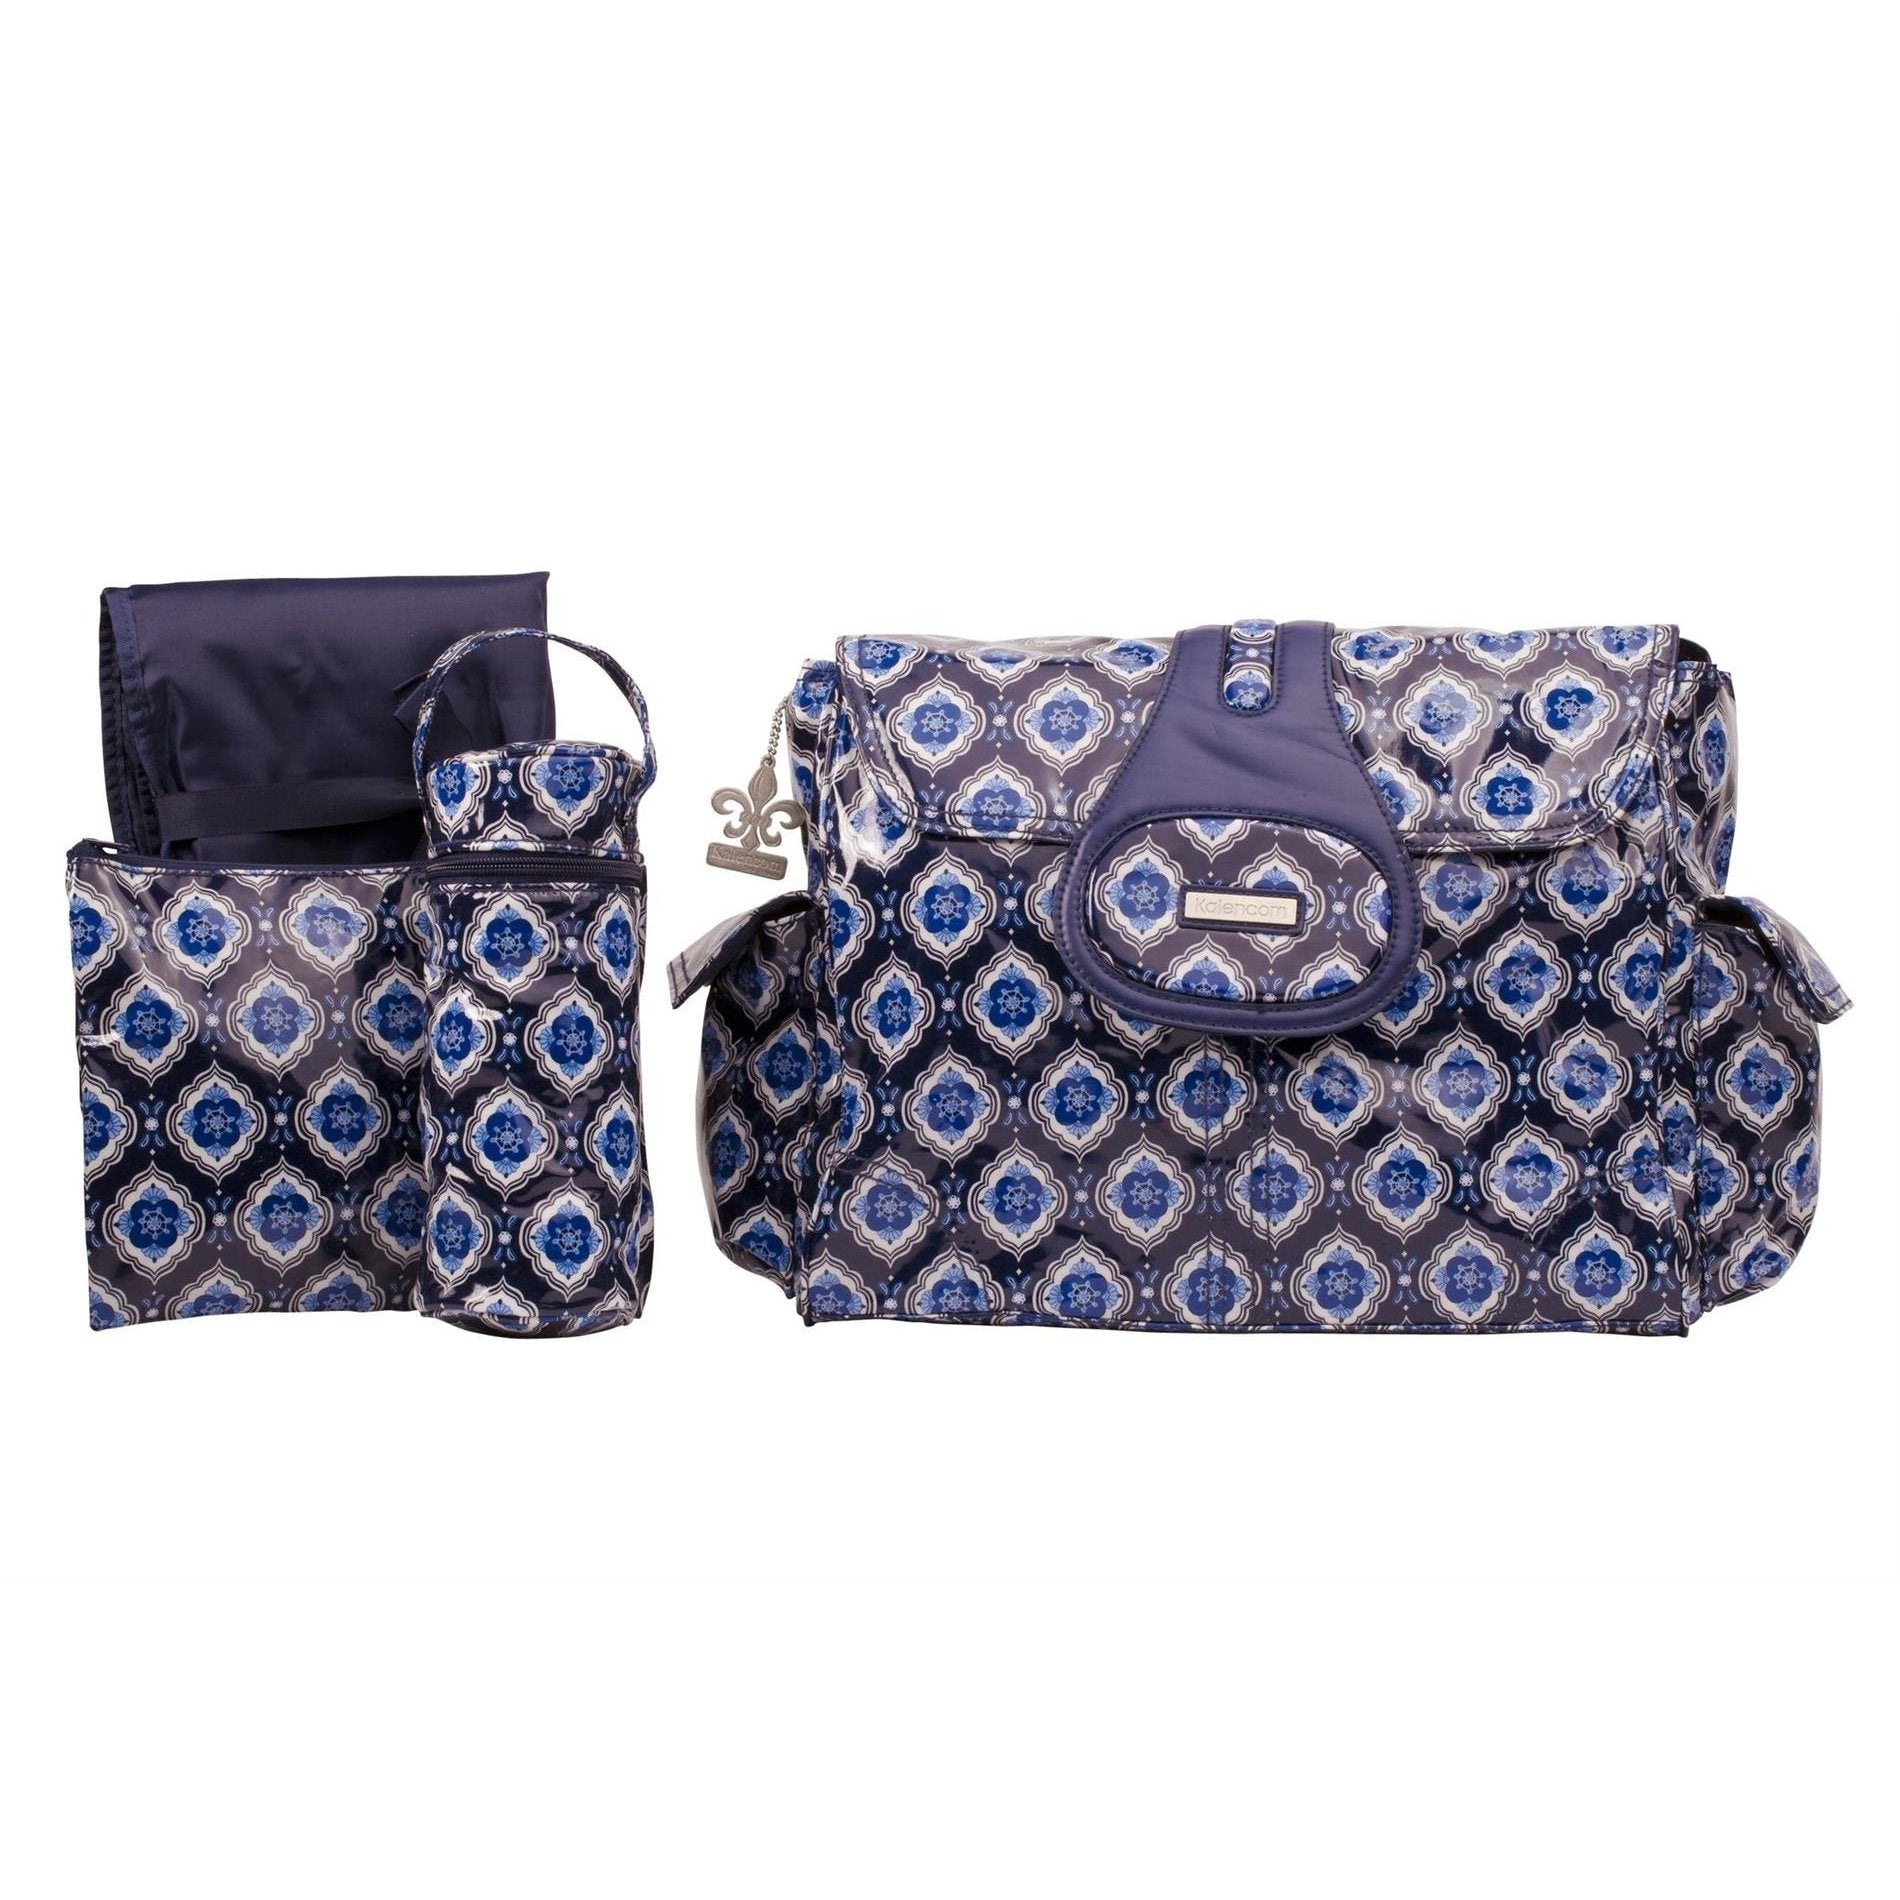 Navy Medallion Elite Coated Diaper Bag | Style 2975 - Kalencom-Diaper Bags-Default-Jack and Jill Boutique